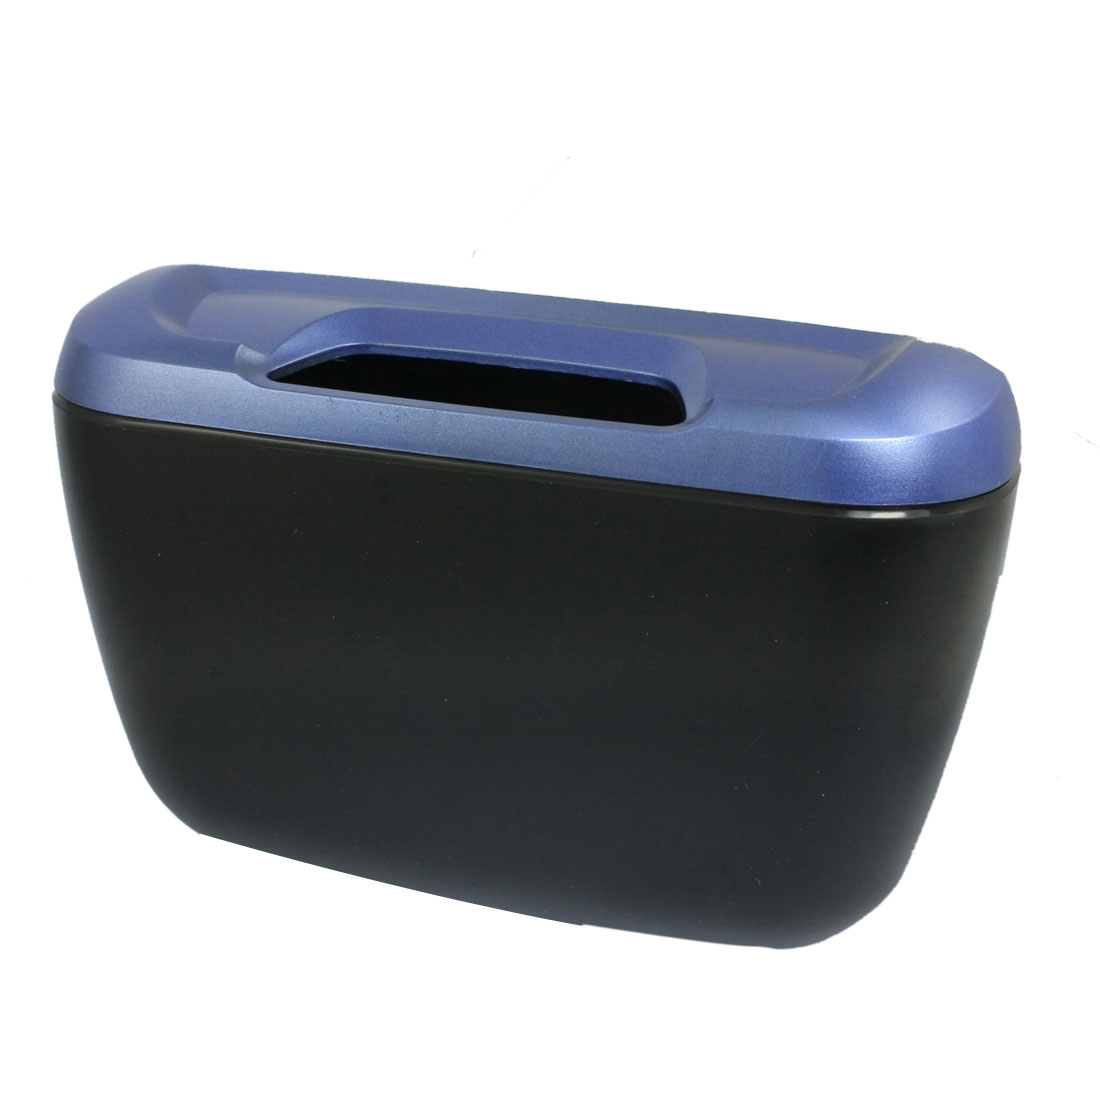 Car Auto Trash Bin Black Blue Plastic Garbage Holder w Hook